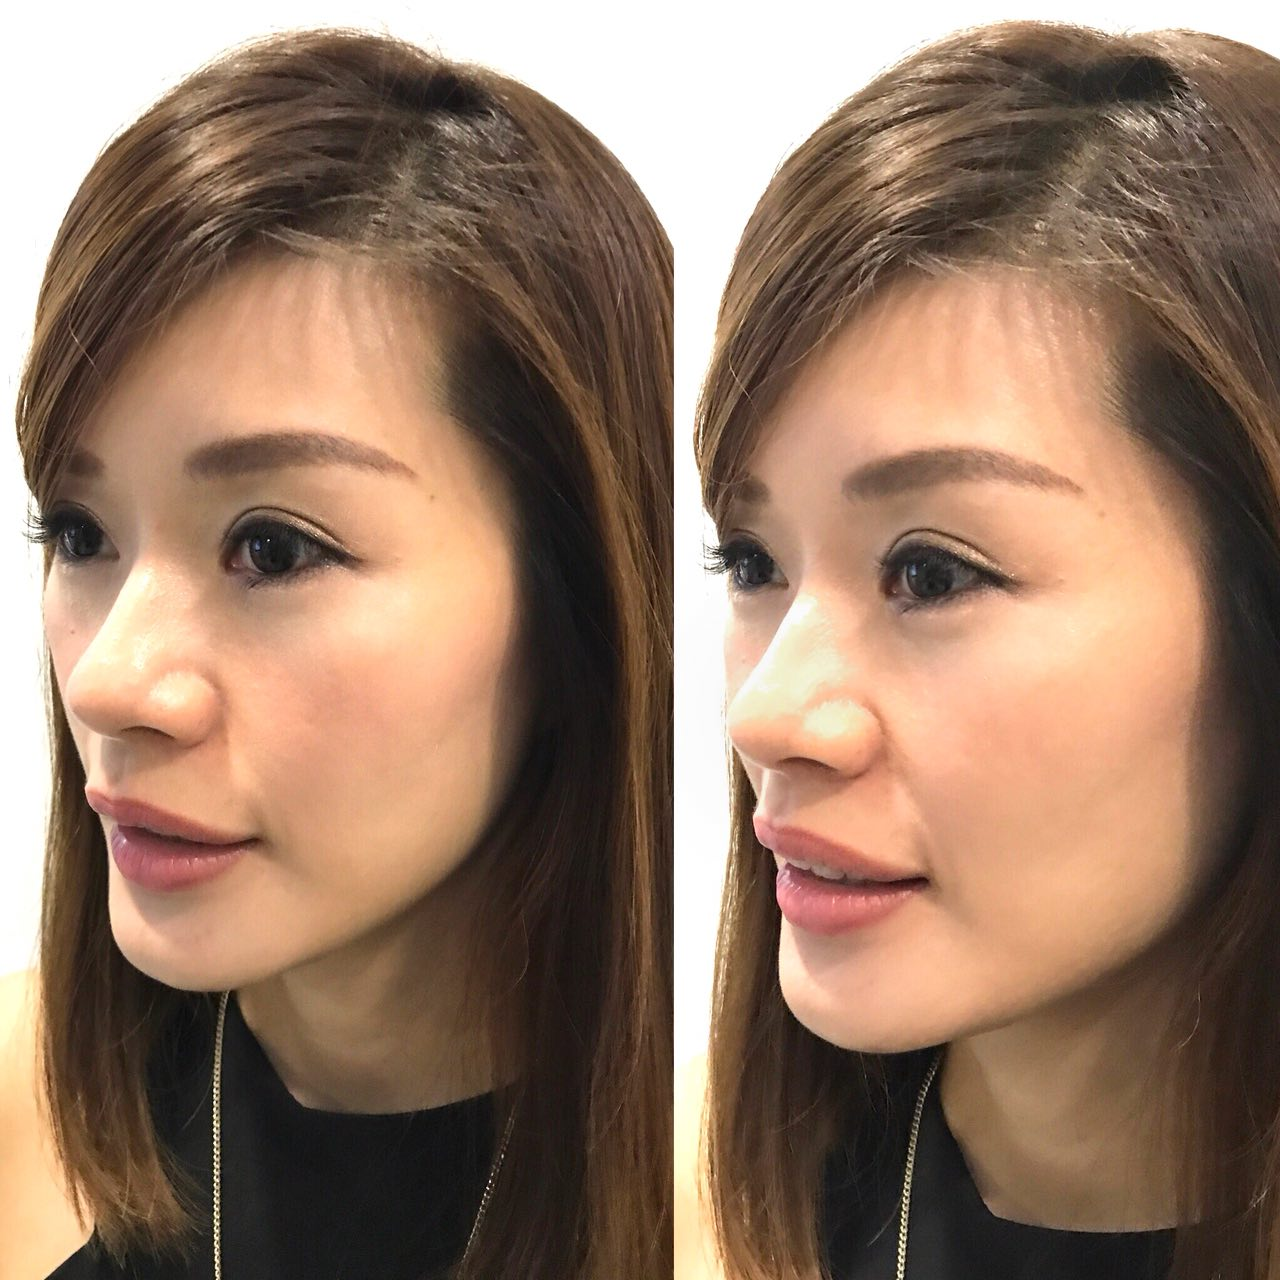 Celevenus aesthetic, Celevenus Review, Cindy, Dr Dylan Chau, Lecinlurve, Sculptra Review, Sculptra Sg